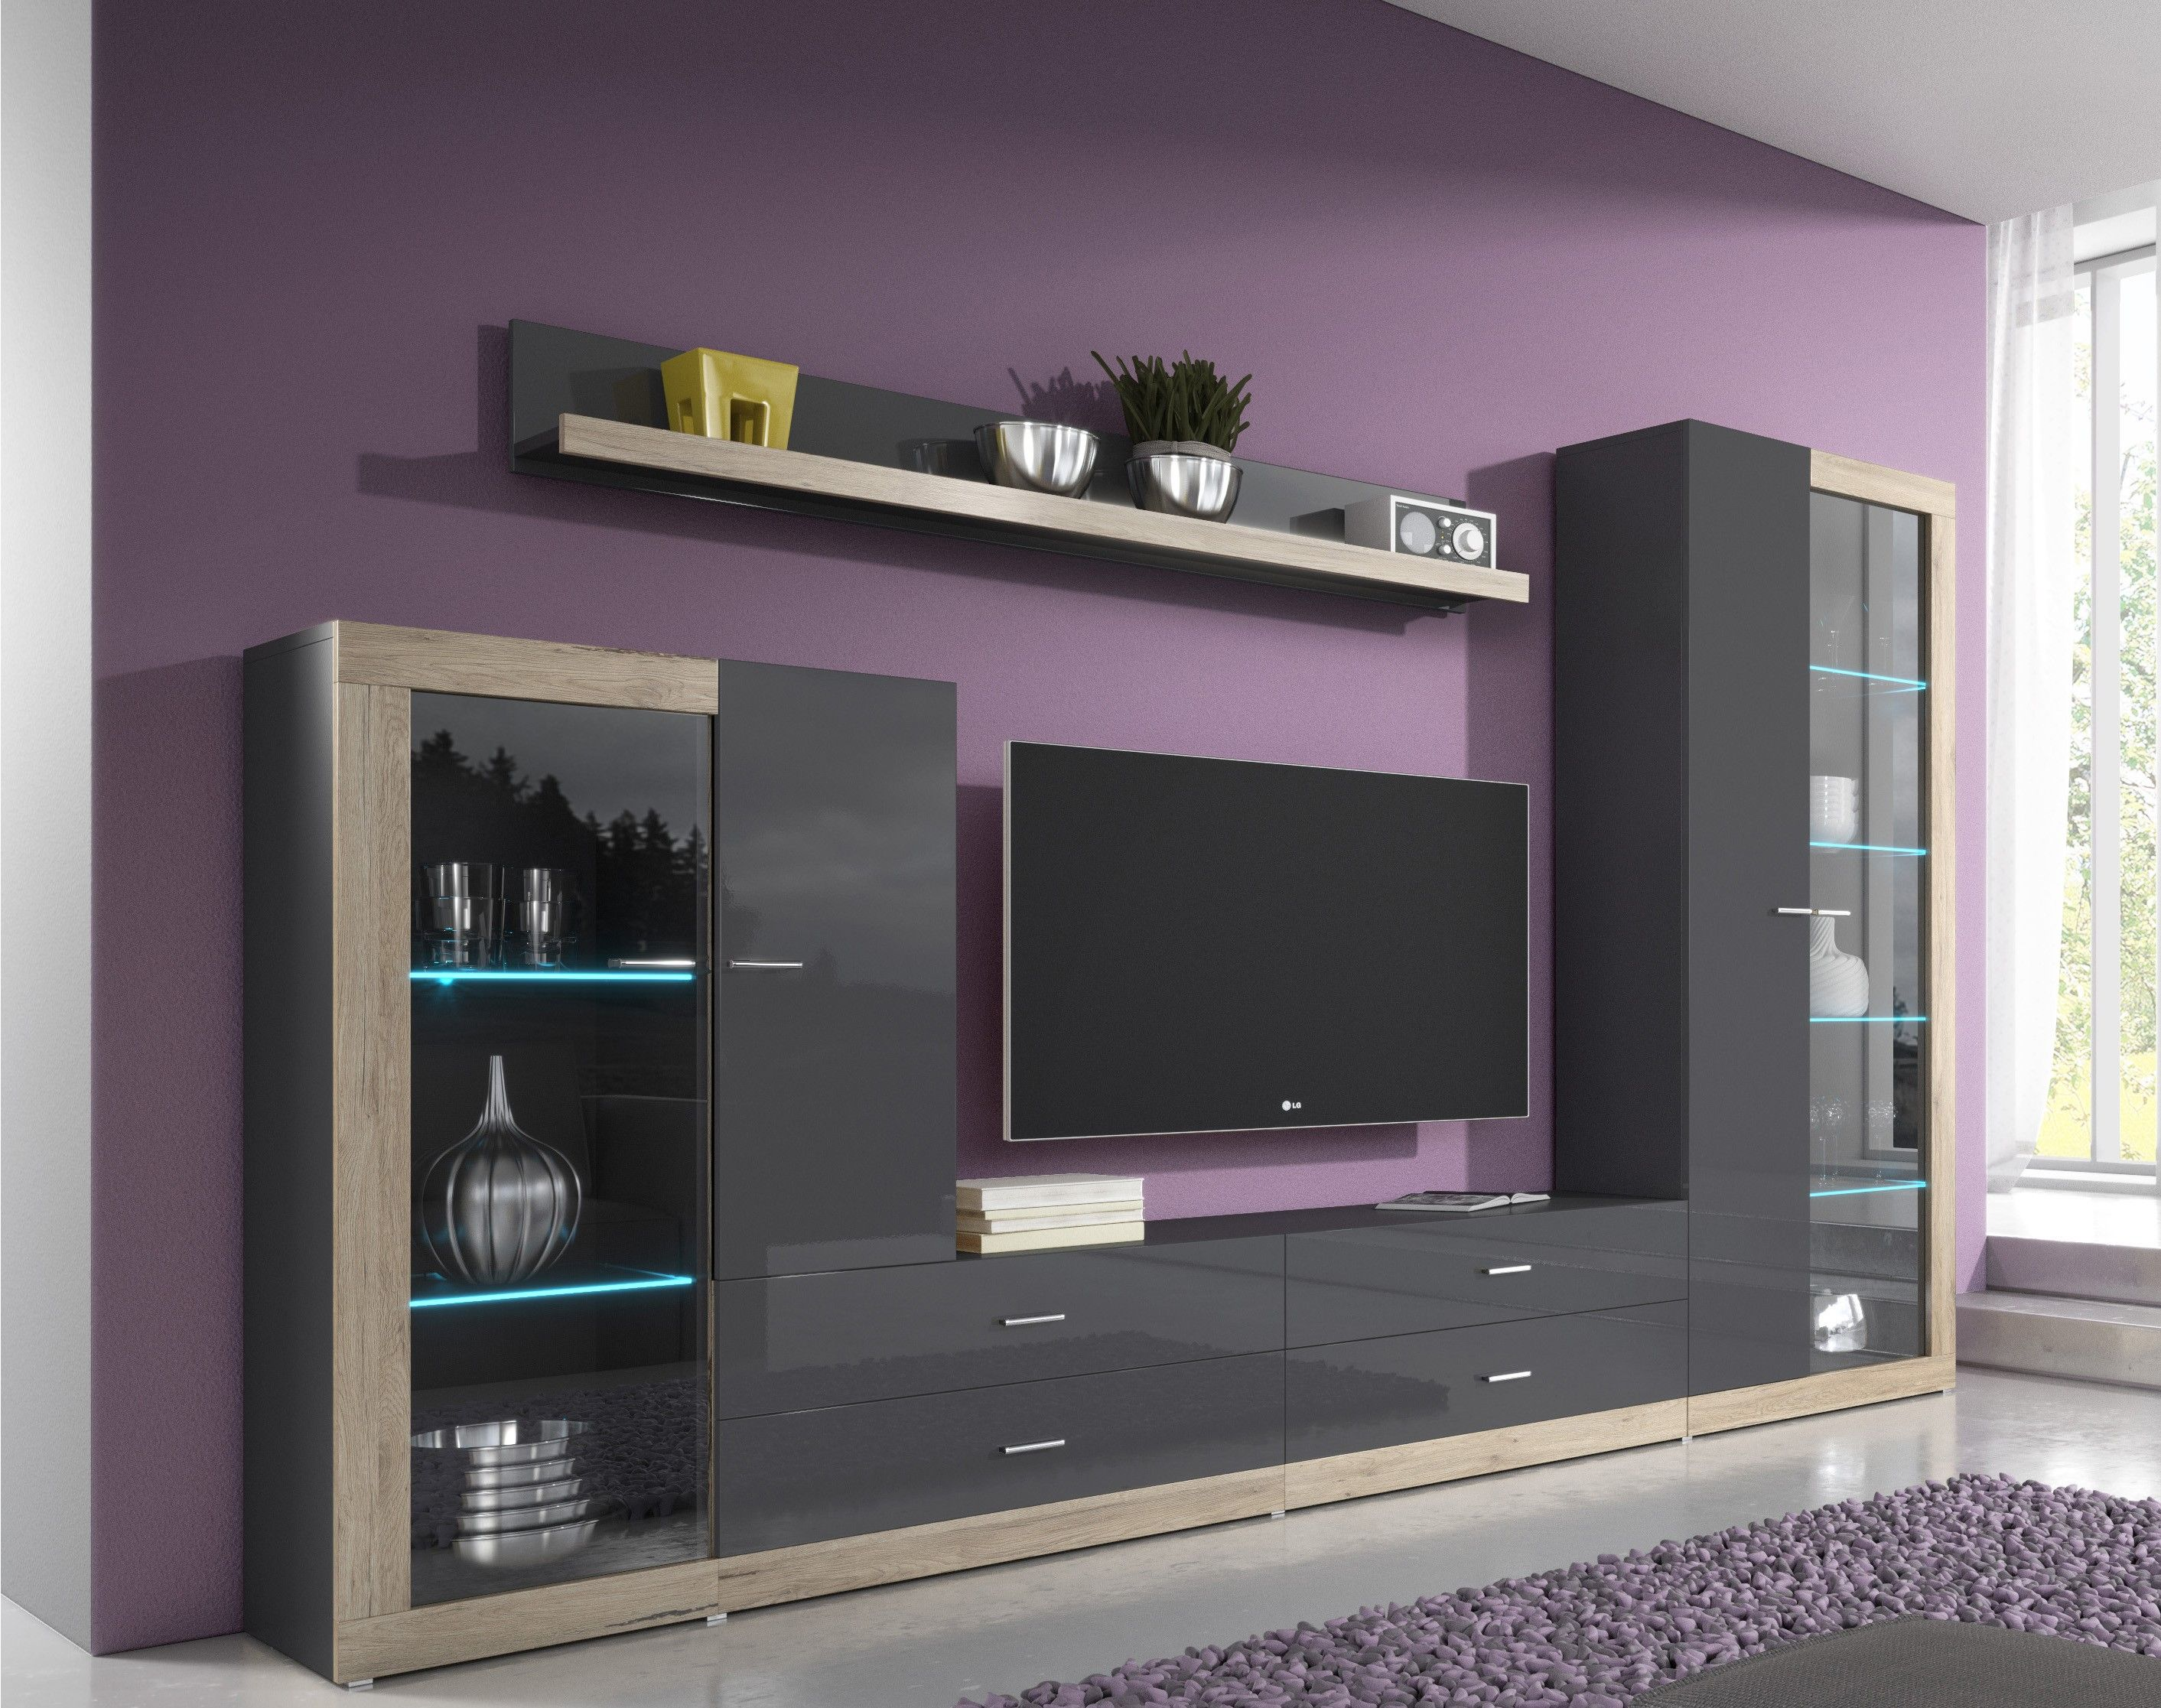 Wall Unit Tessa 1 Living Room Wall Units Bedroom Wall Units Modern Tv Wall Units